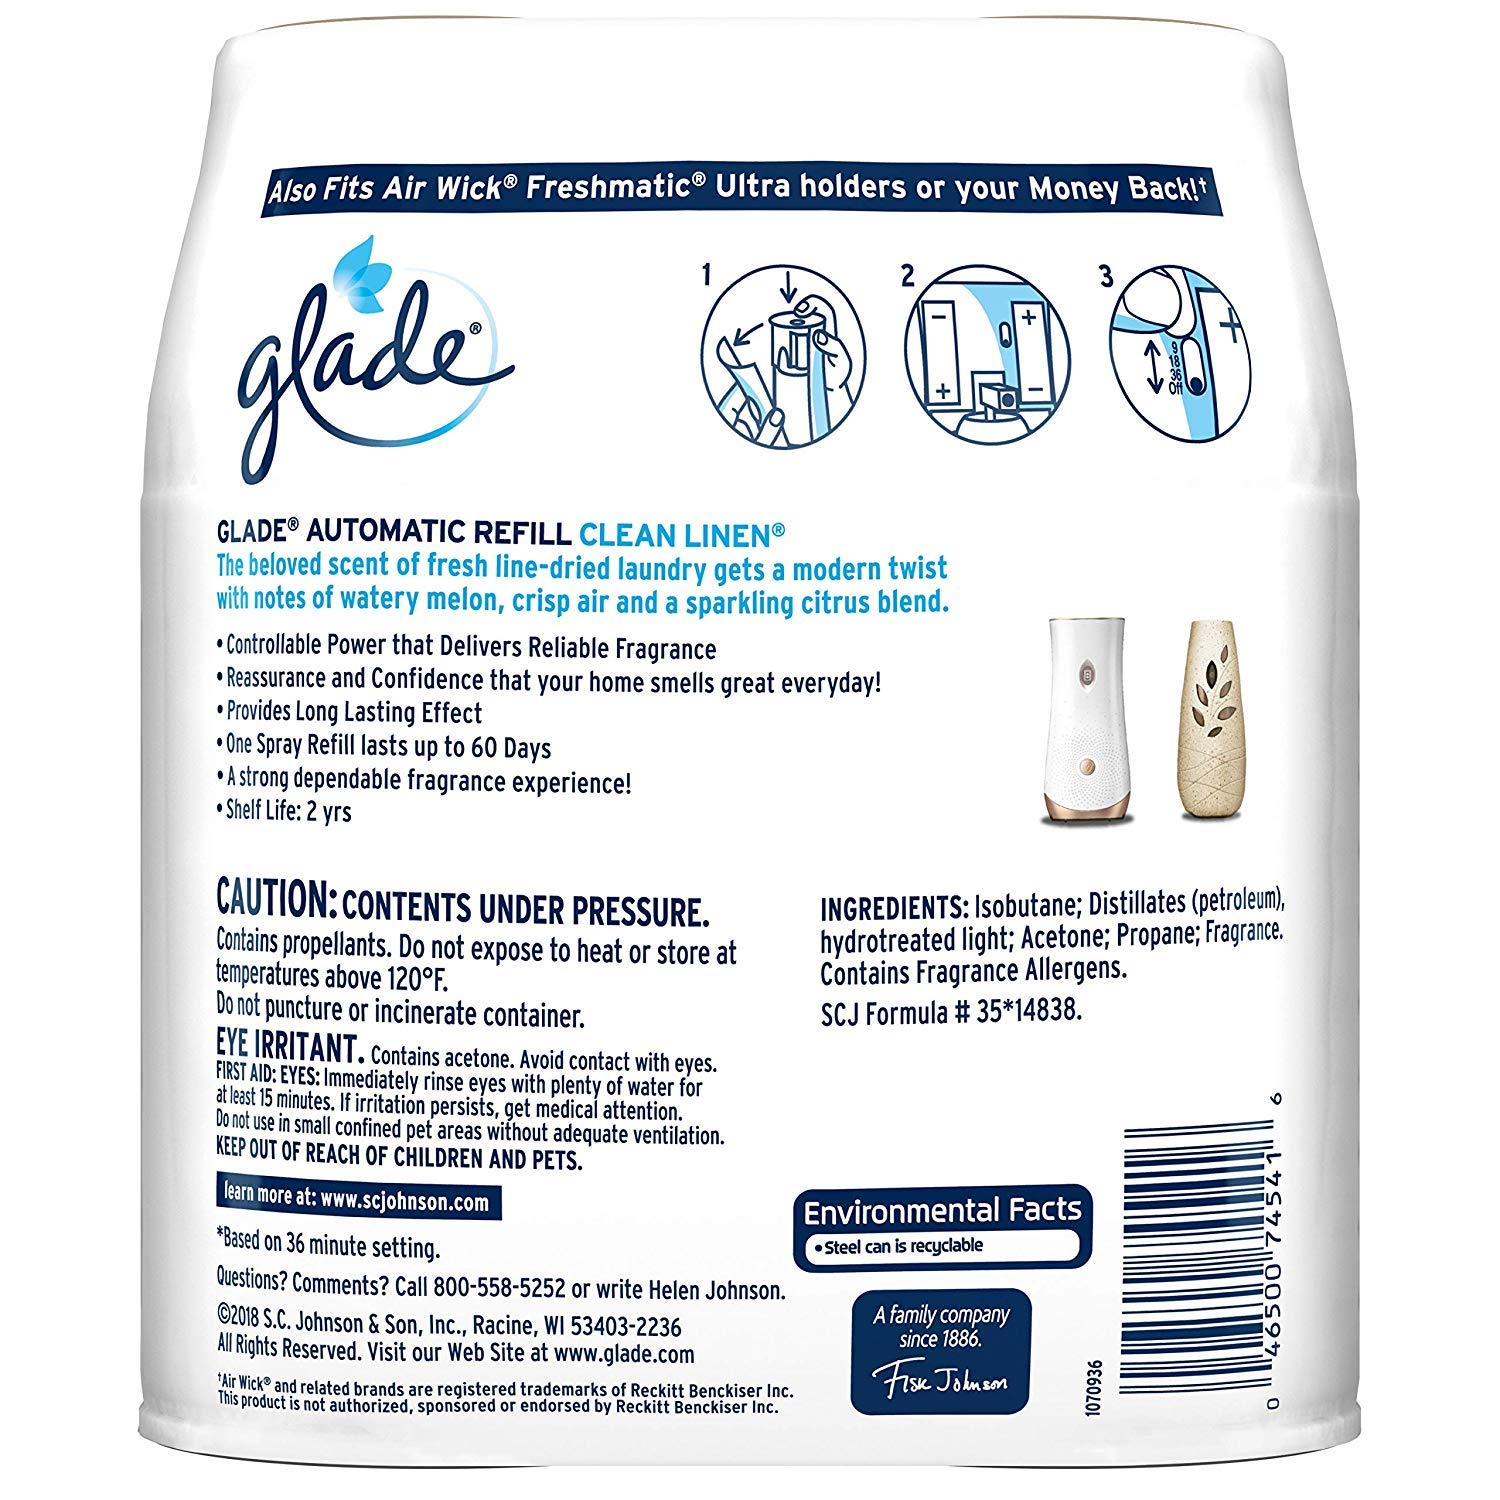 Glade Automatic Spray Air Freshener Refill, Clean Linen, 13 Refills, 12.4 oz + Free Gift - Productivity Planner - Attain Your Dreams! (13 Refills) by  (Image #2)